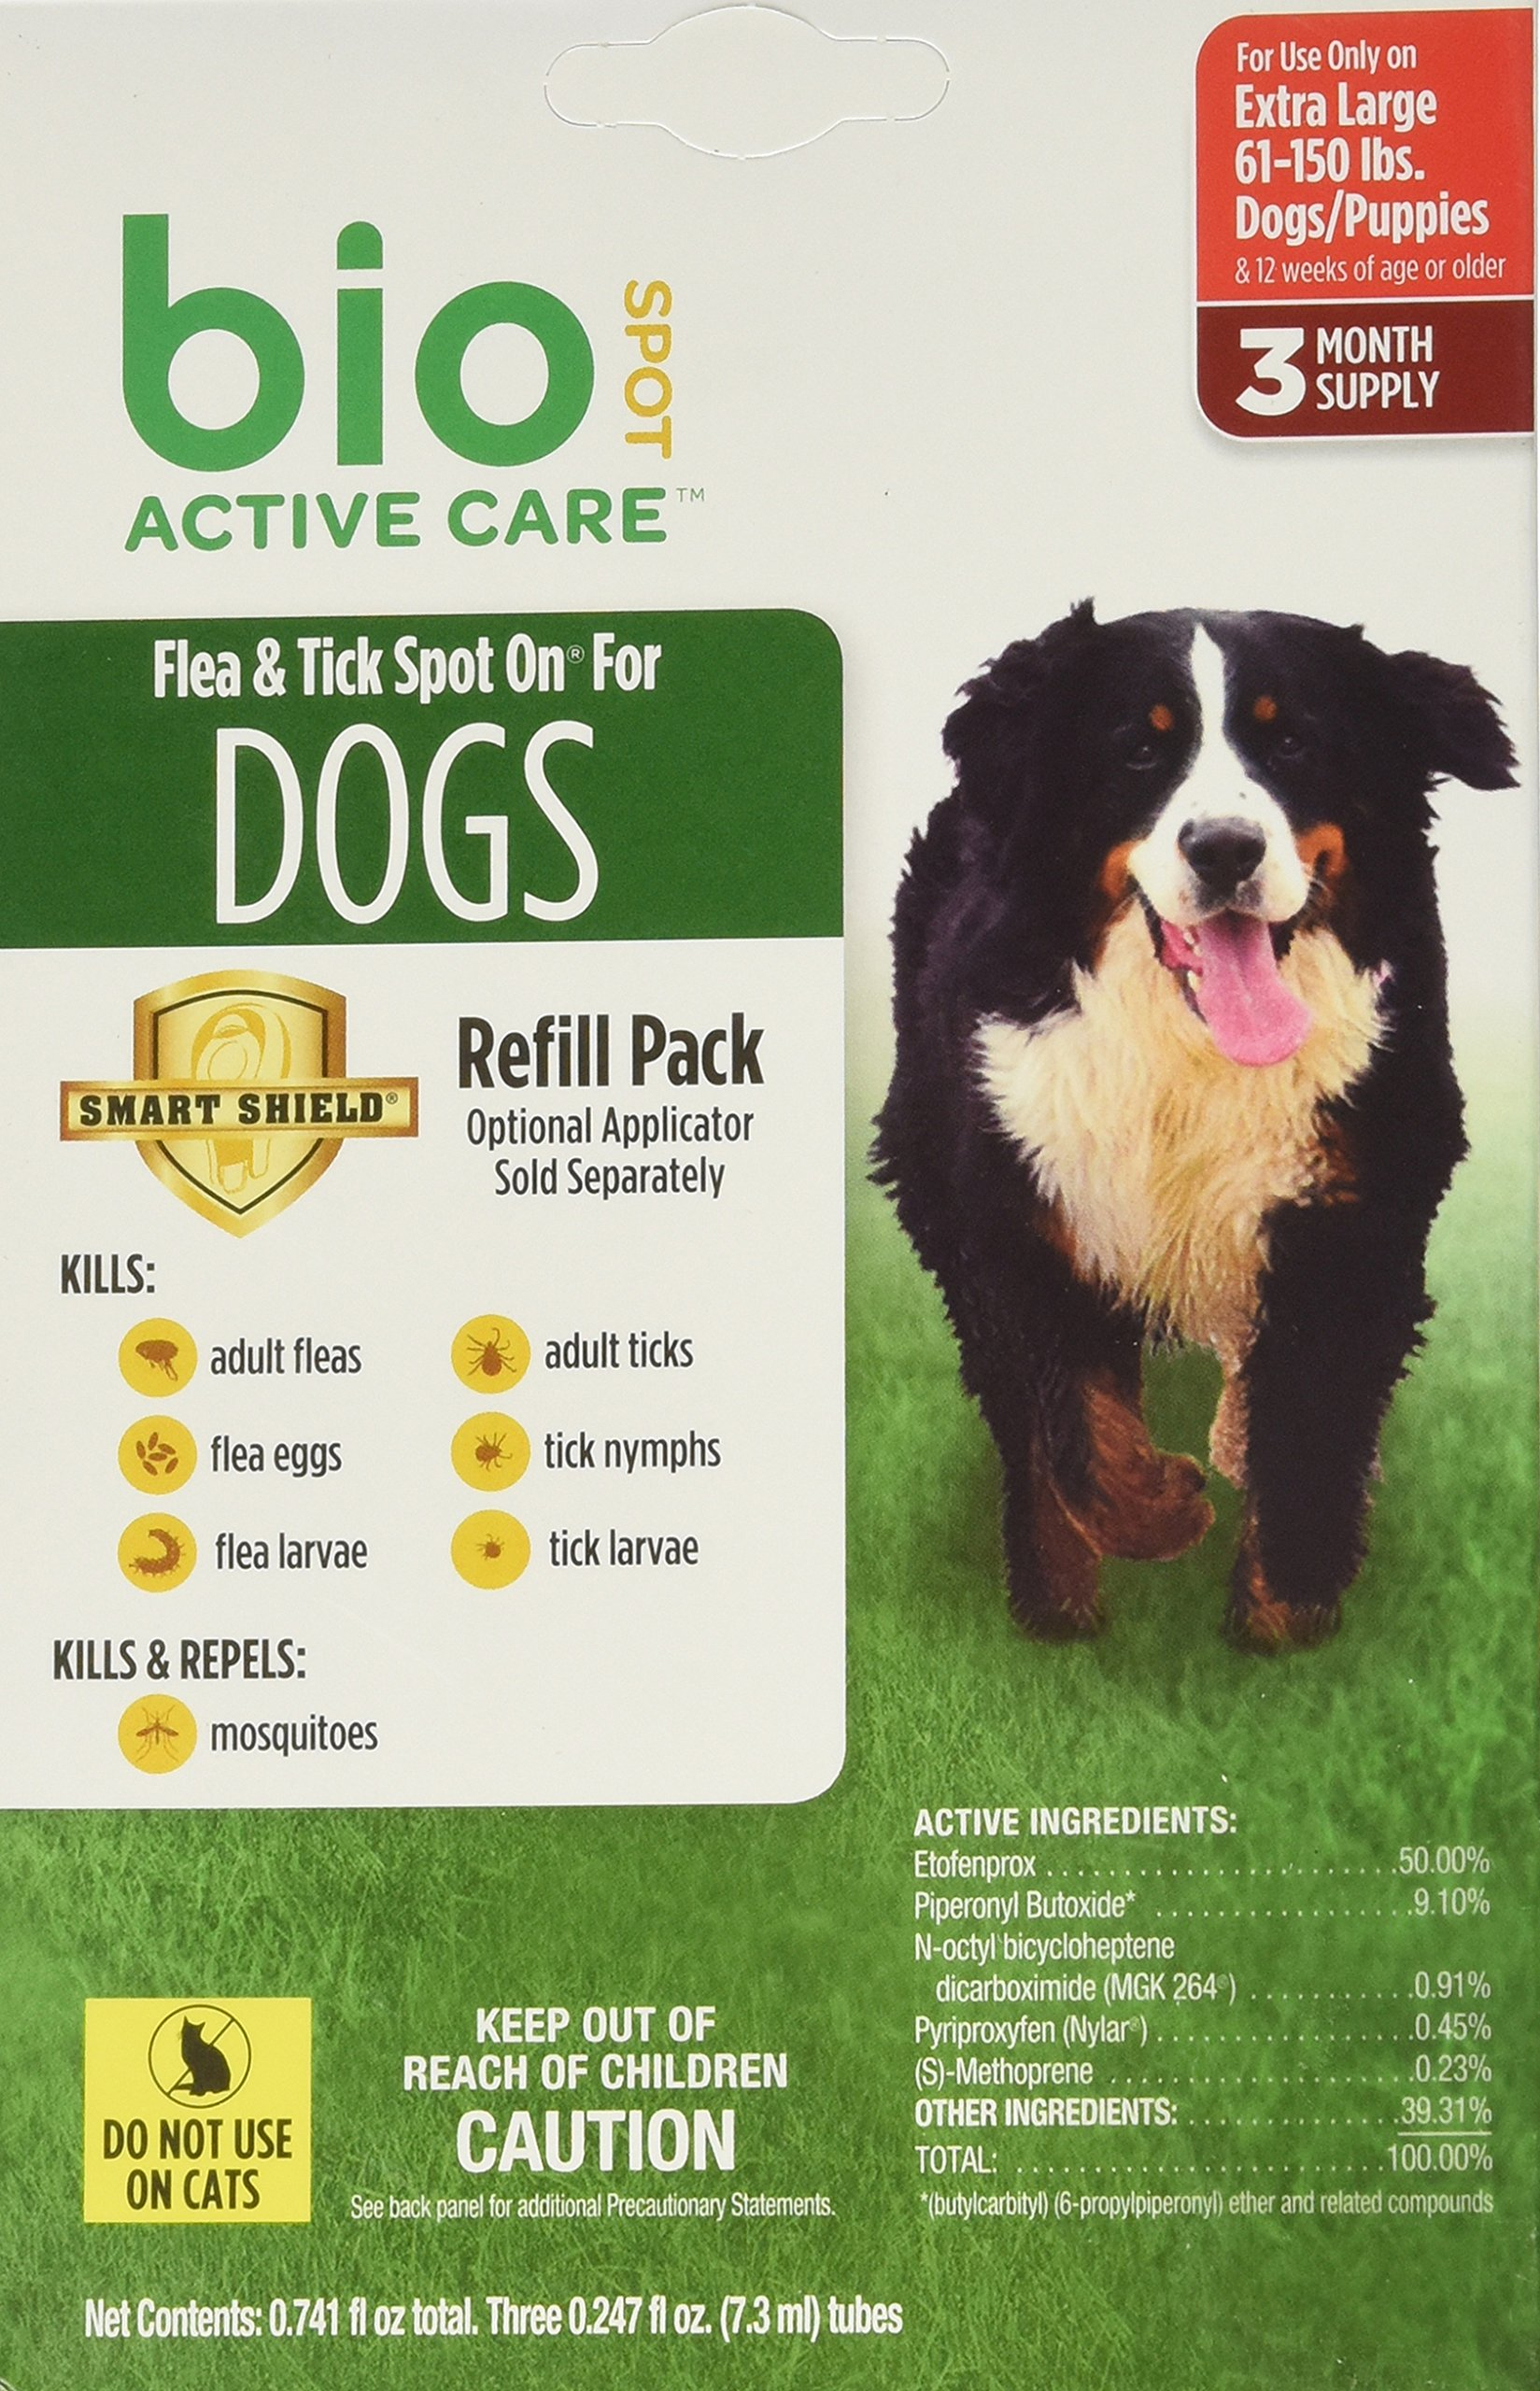 Bio Spot Active Care Flea & Tick Spot On for Extra Large Dogs (61-150 lbs.) 3 Month Refill